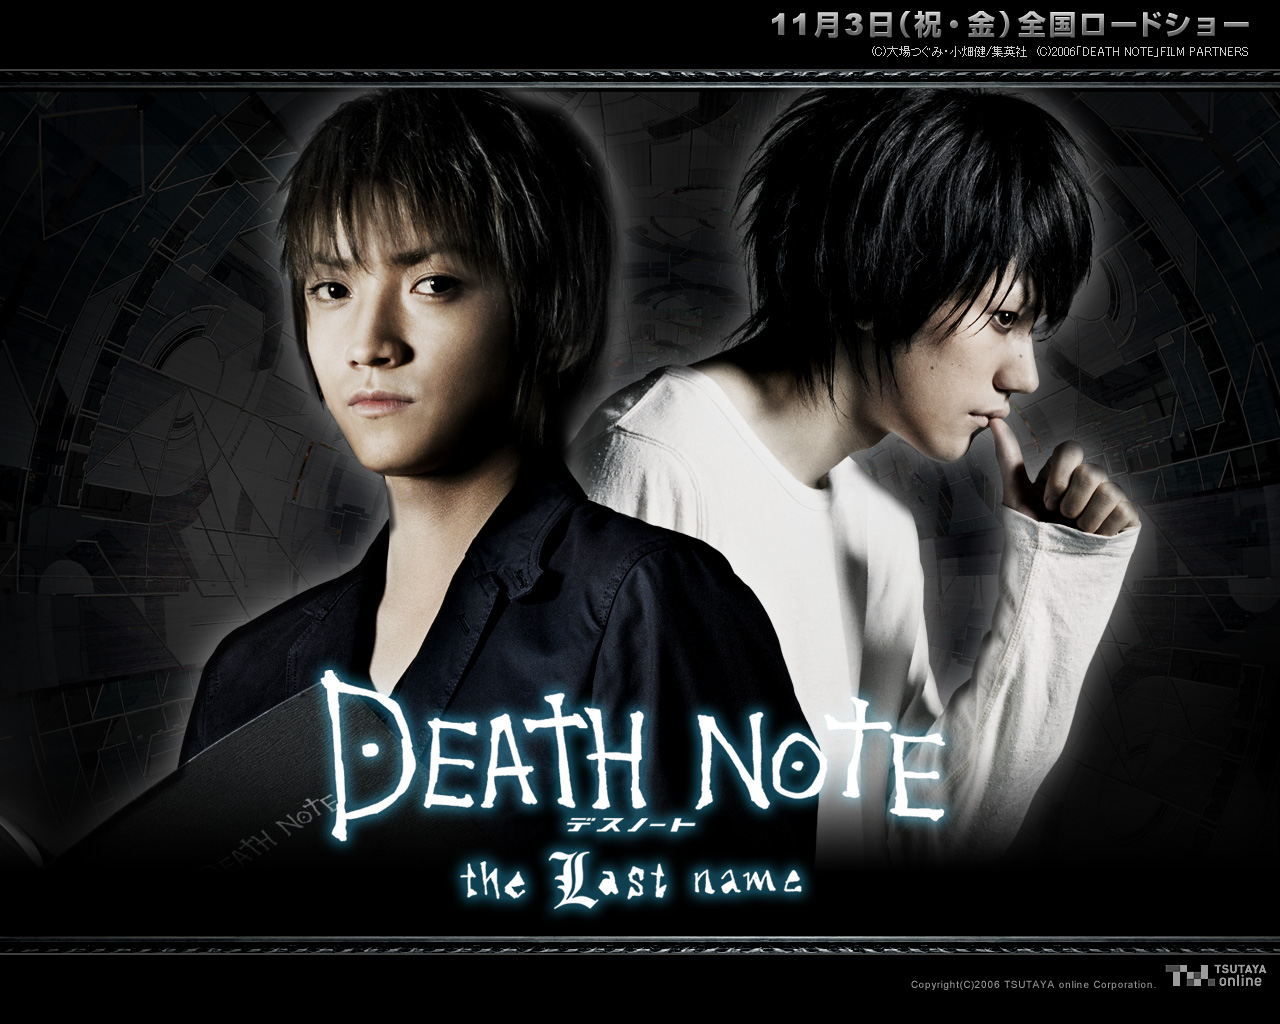 4 Must-watch Japanese Movies If You Like Death Note